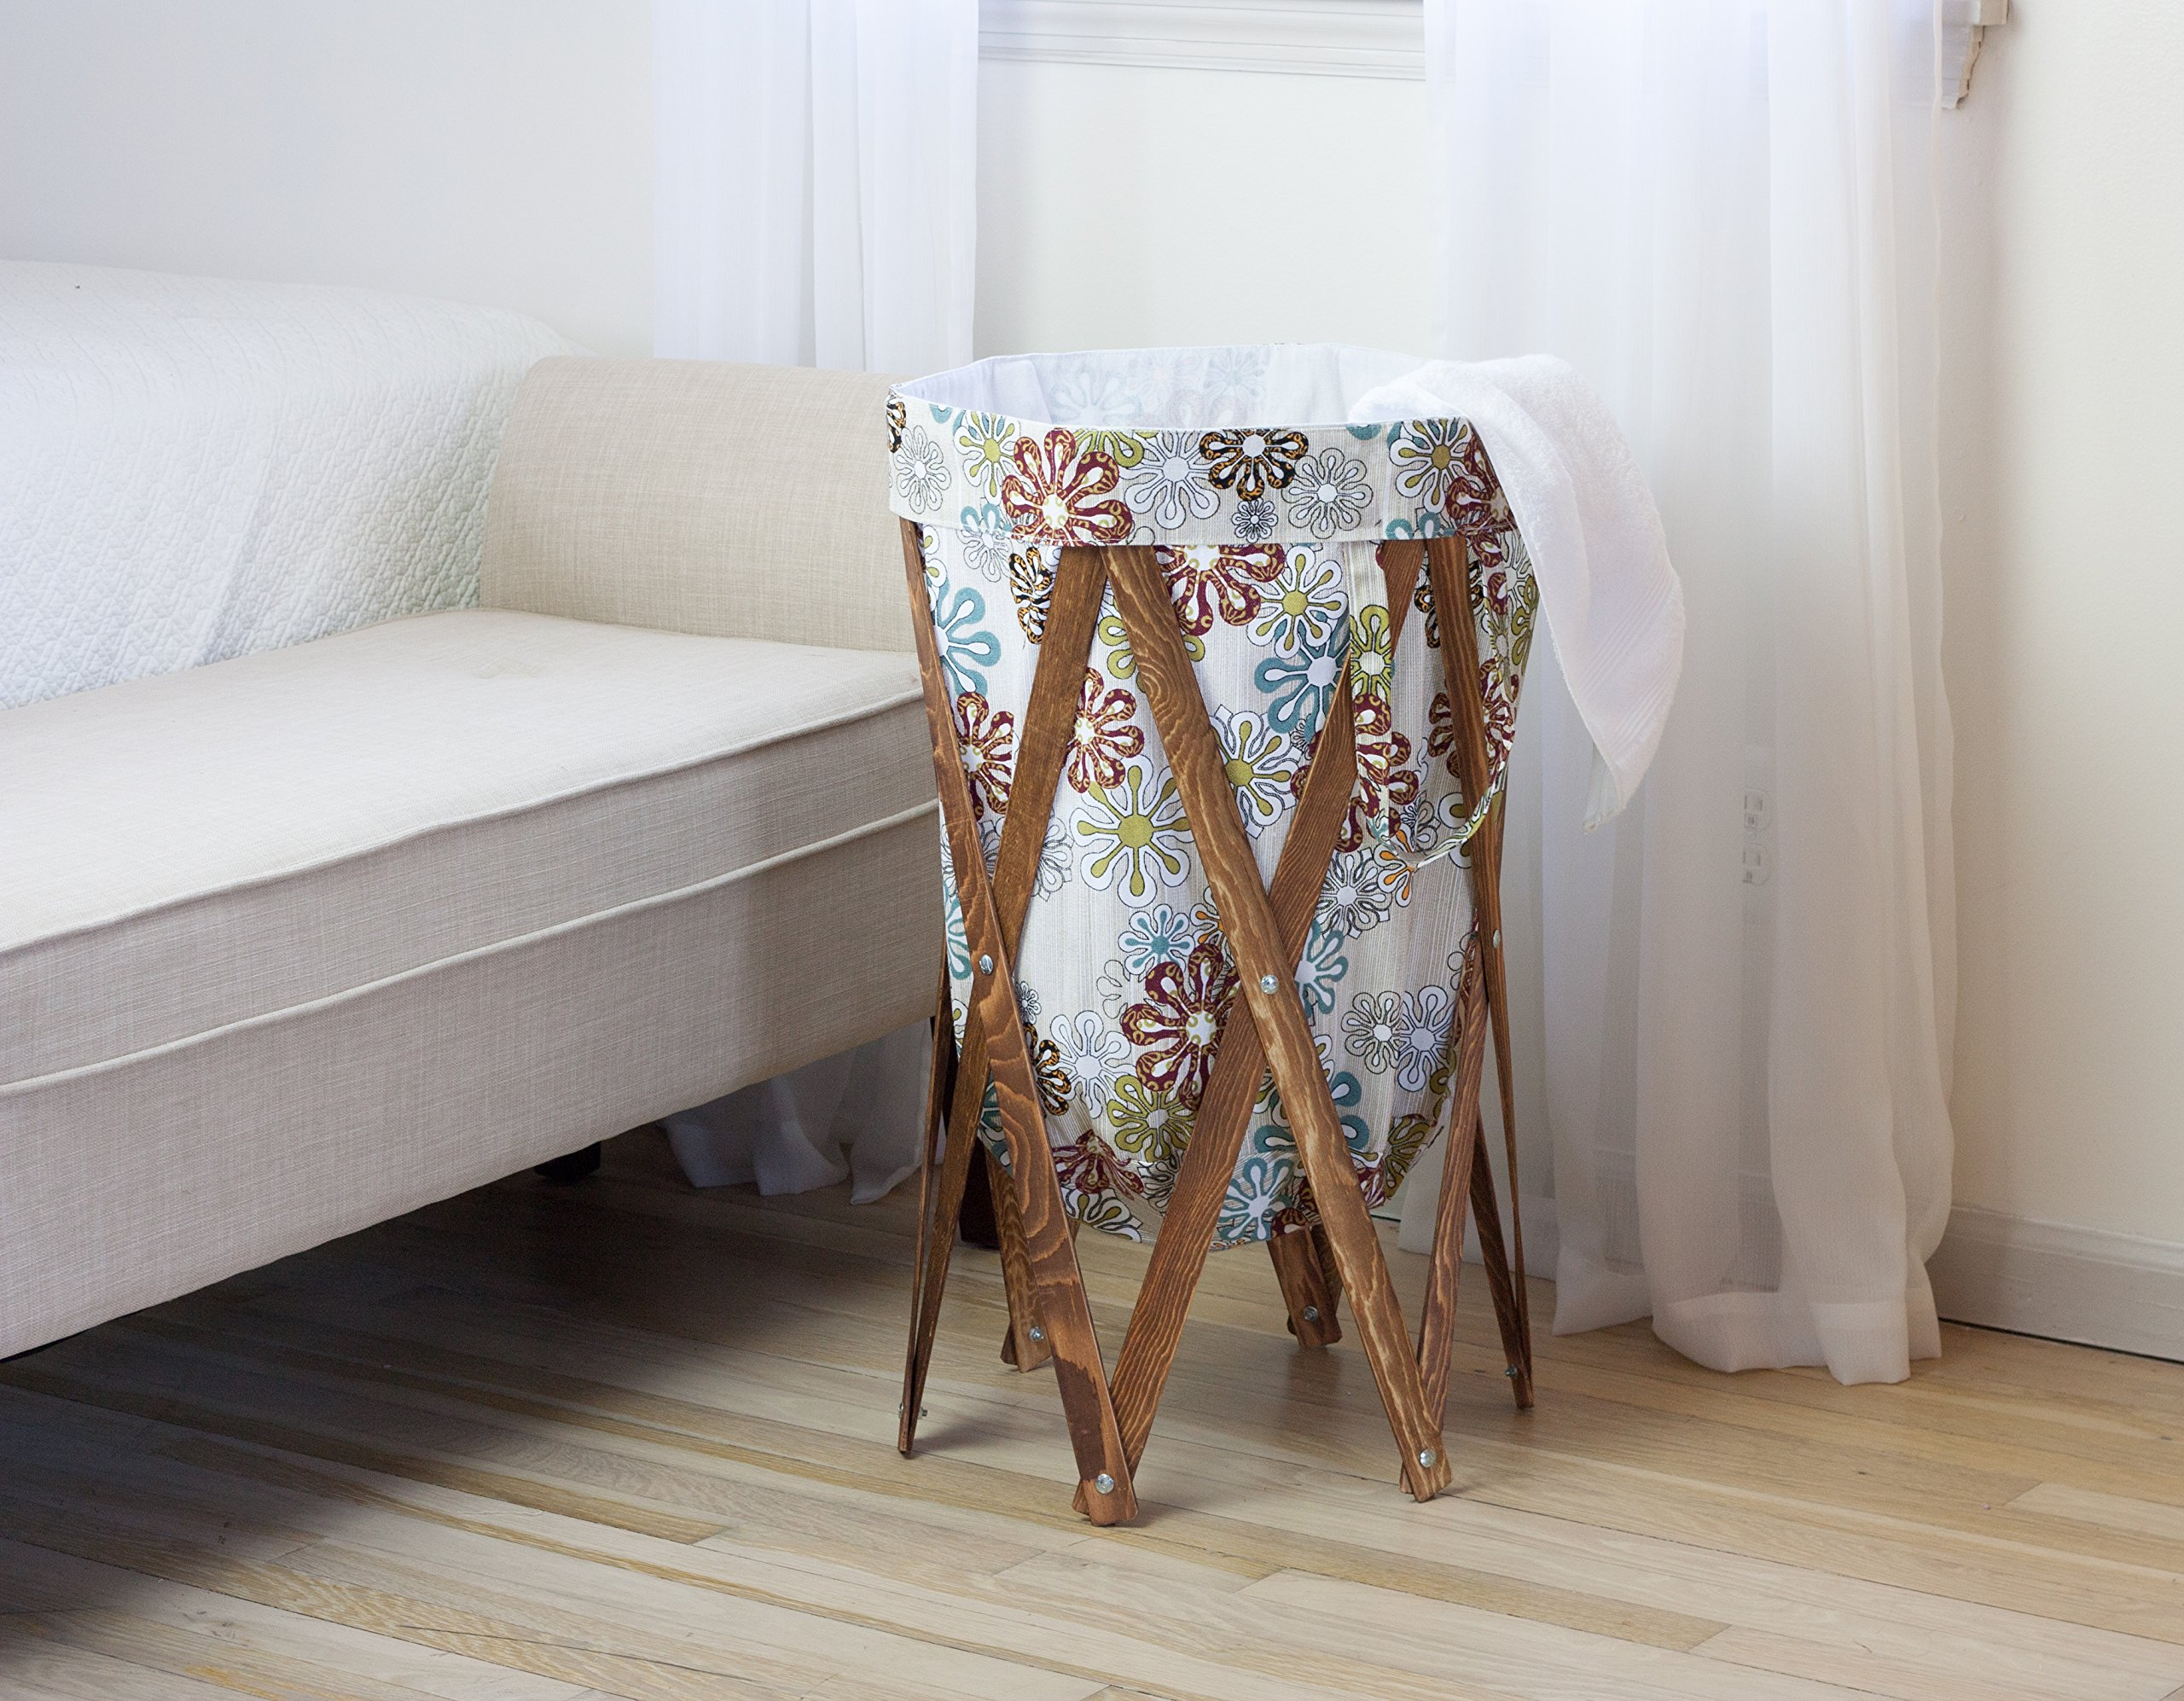 MAX + RAE Collapsible Laundry Hamper with Stained Wood Frame | Dirty Clothes Storage | Removable Fabric Bag with Handles, Easy to Carry and Clean | Nursery, Kids Bedroom, Bathroom (Flower Art 2) by MAX + RAE (Image #3)